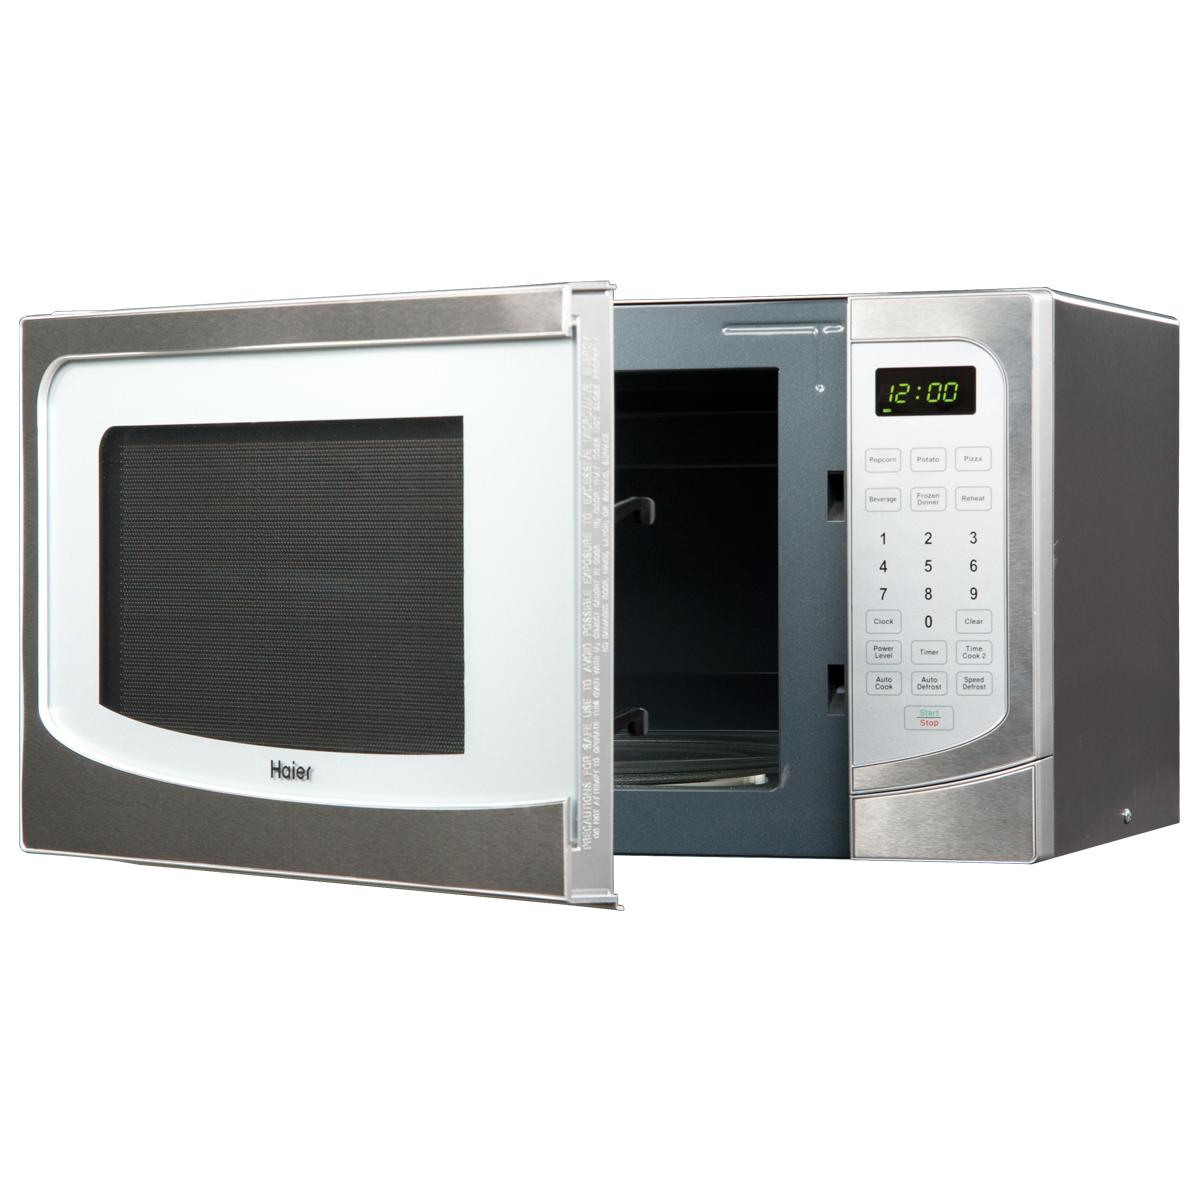 haier microwave oven user manual